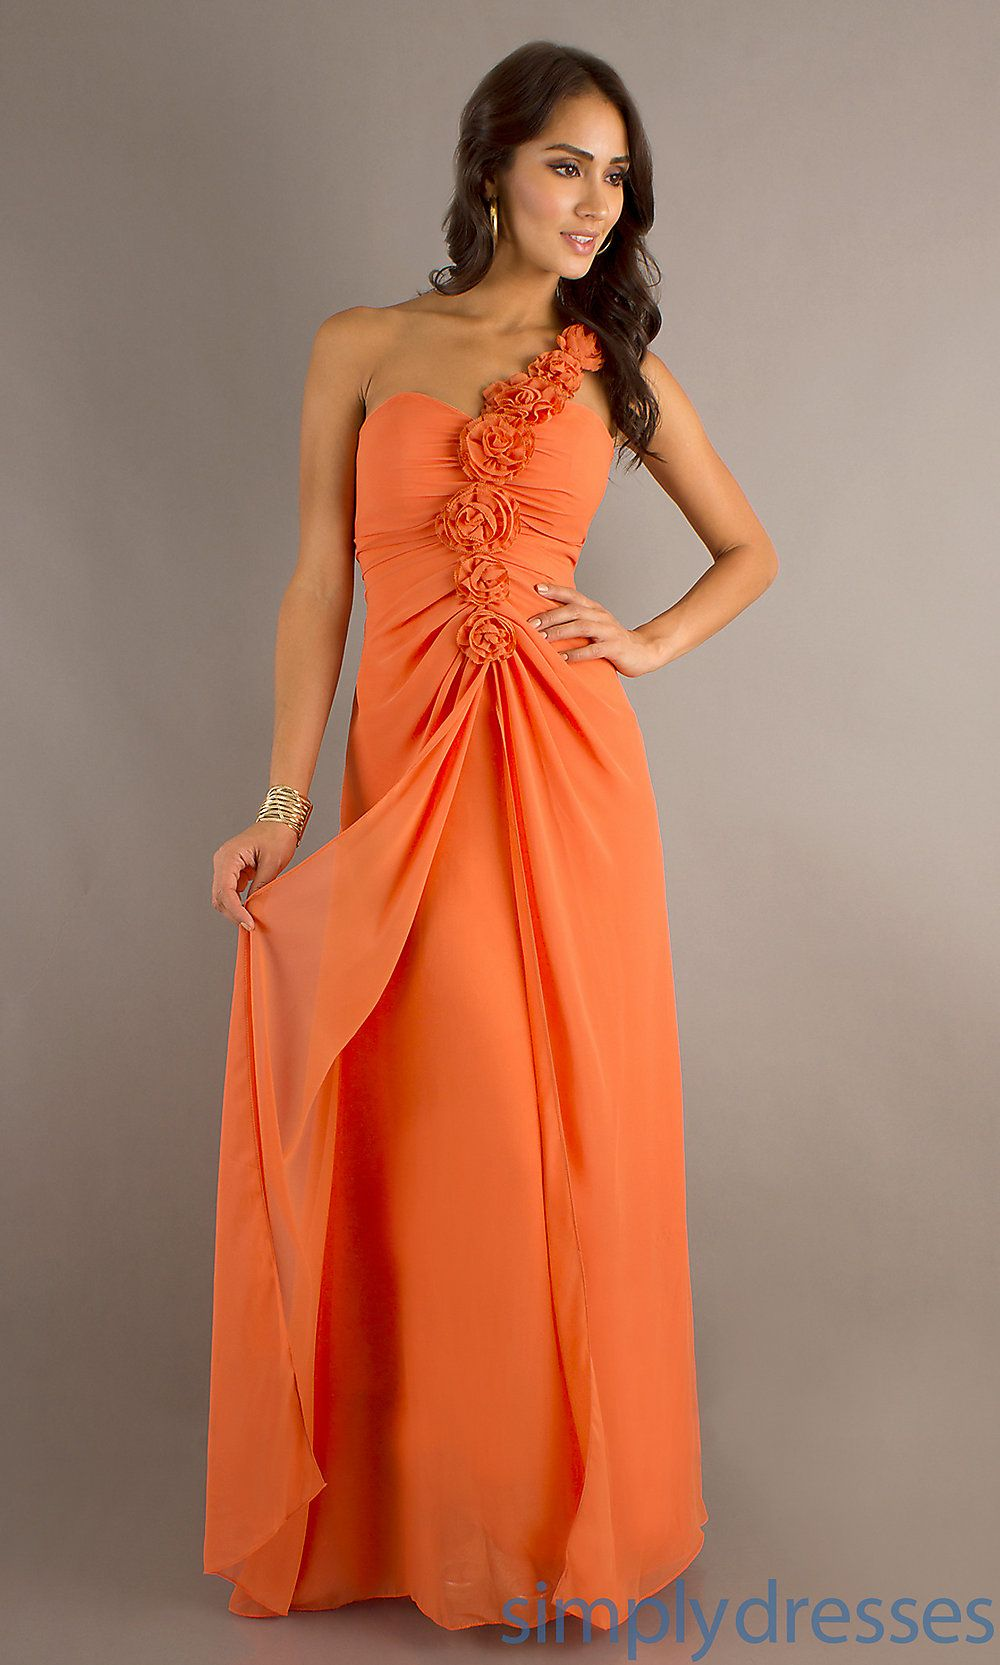 Bebe long orange dress pics long one shoulder dress for Cheap wedding dresses in orange county